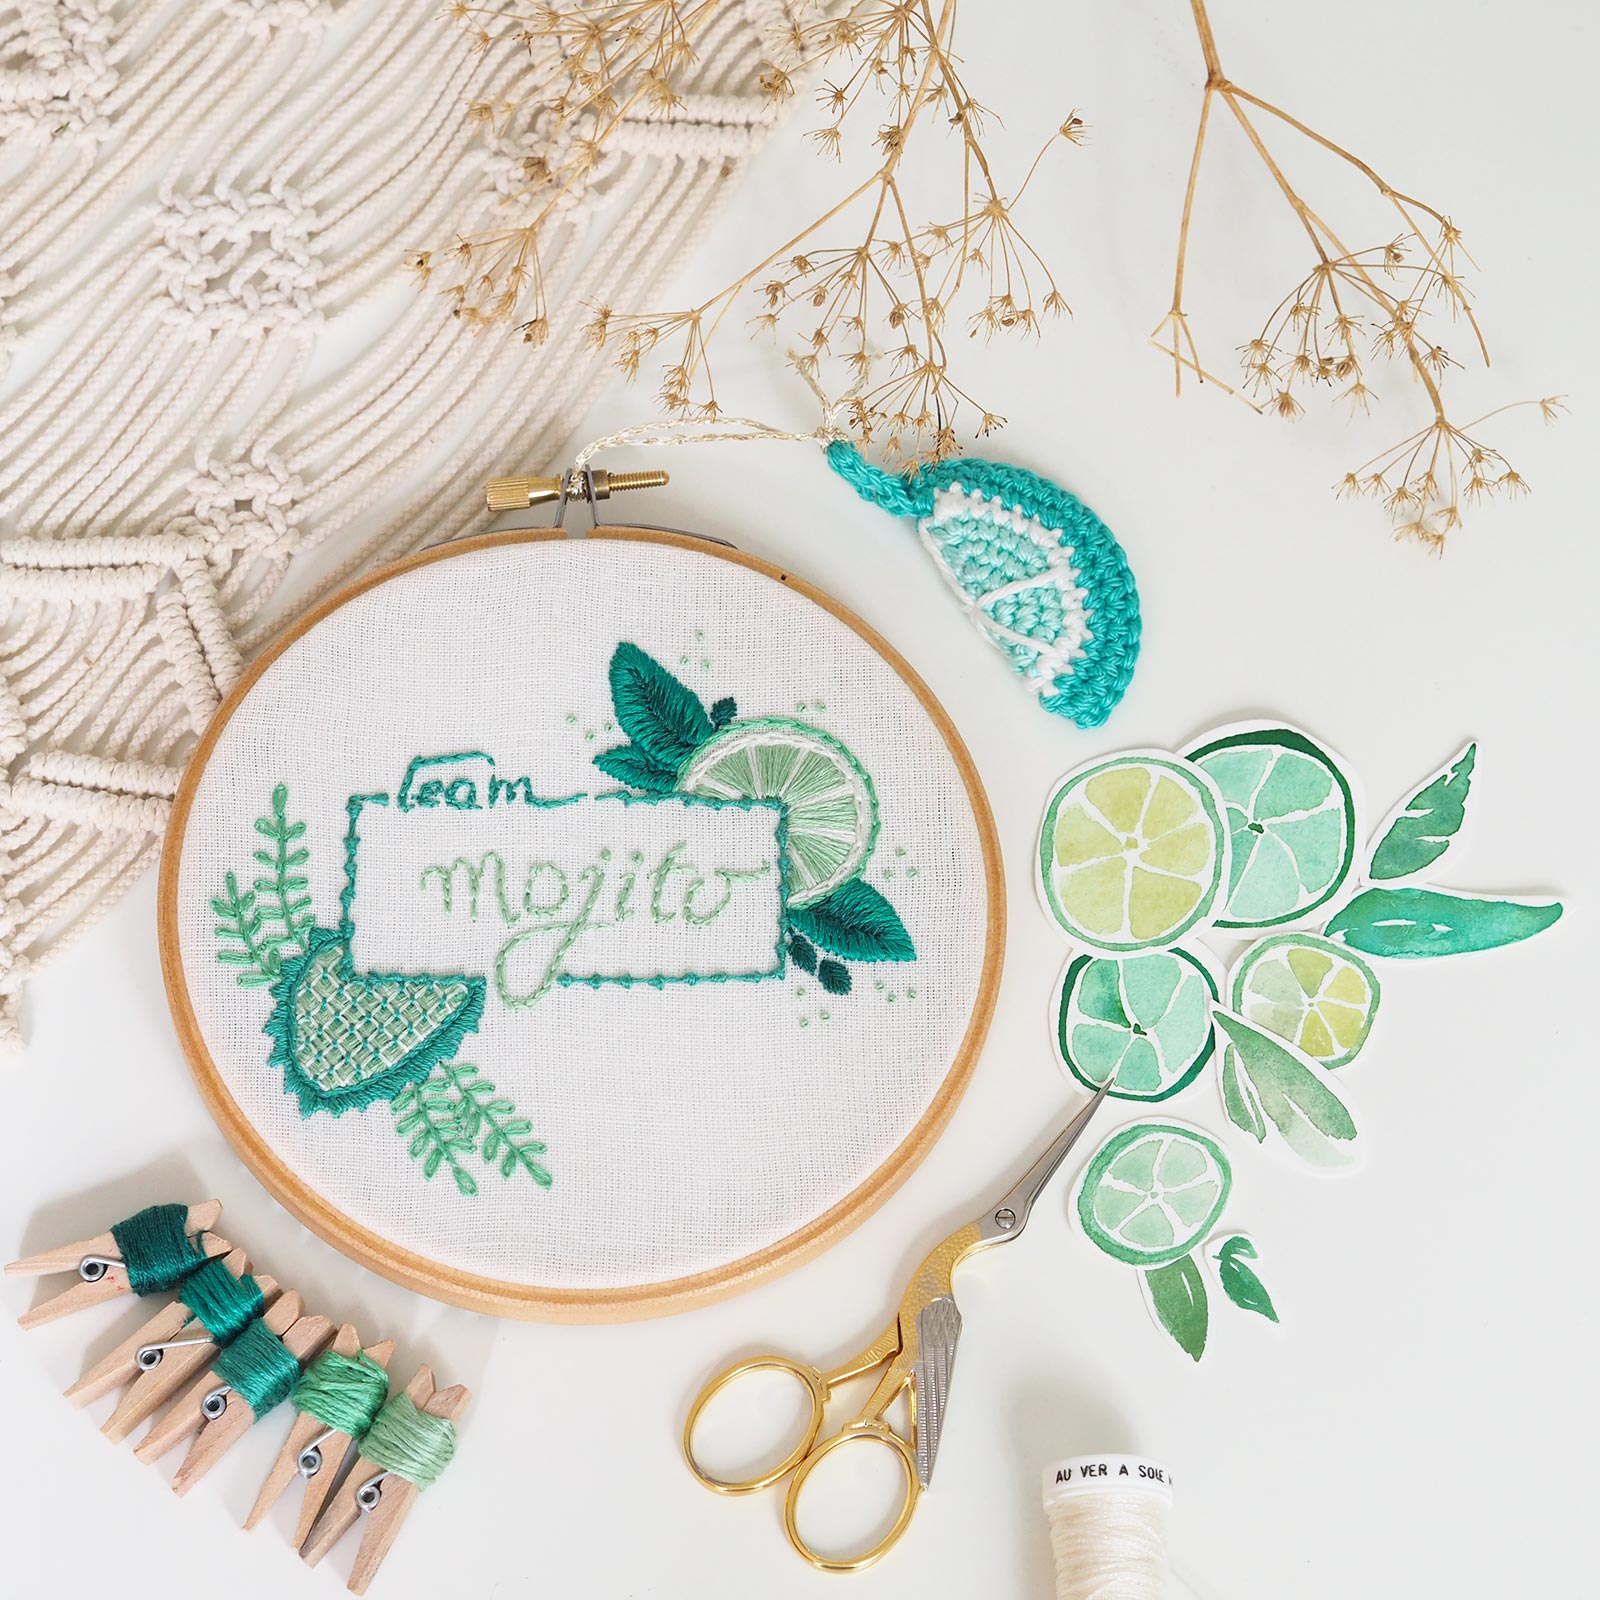 mojito-broderie-embroidery-crochet-watercolor-lime-vert-laboutiquedemelimelo